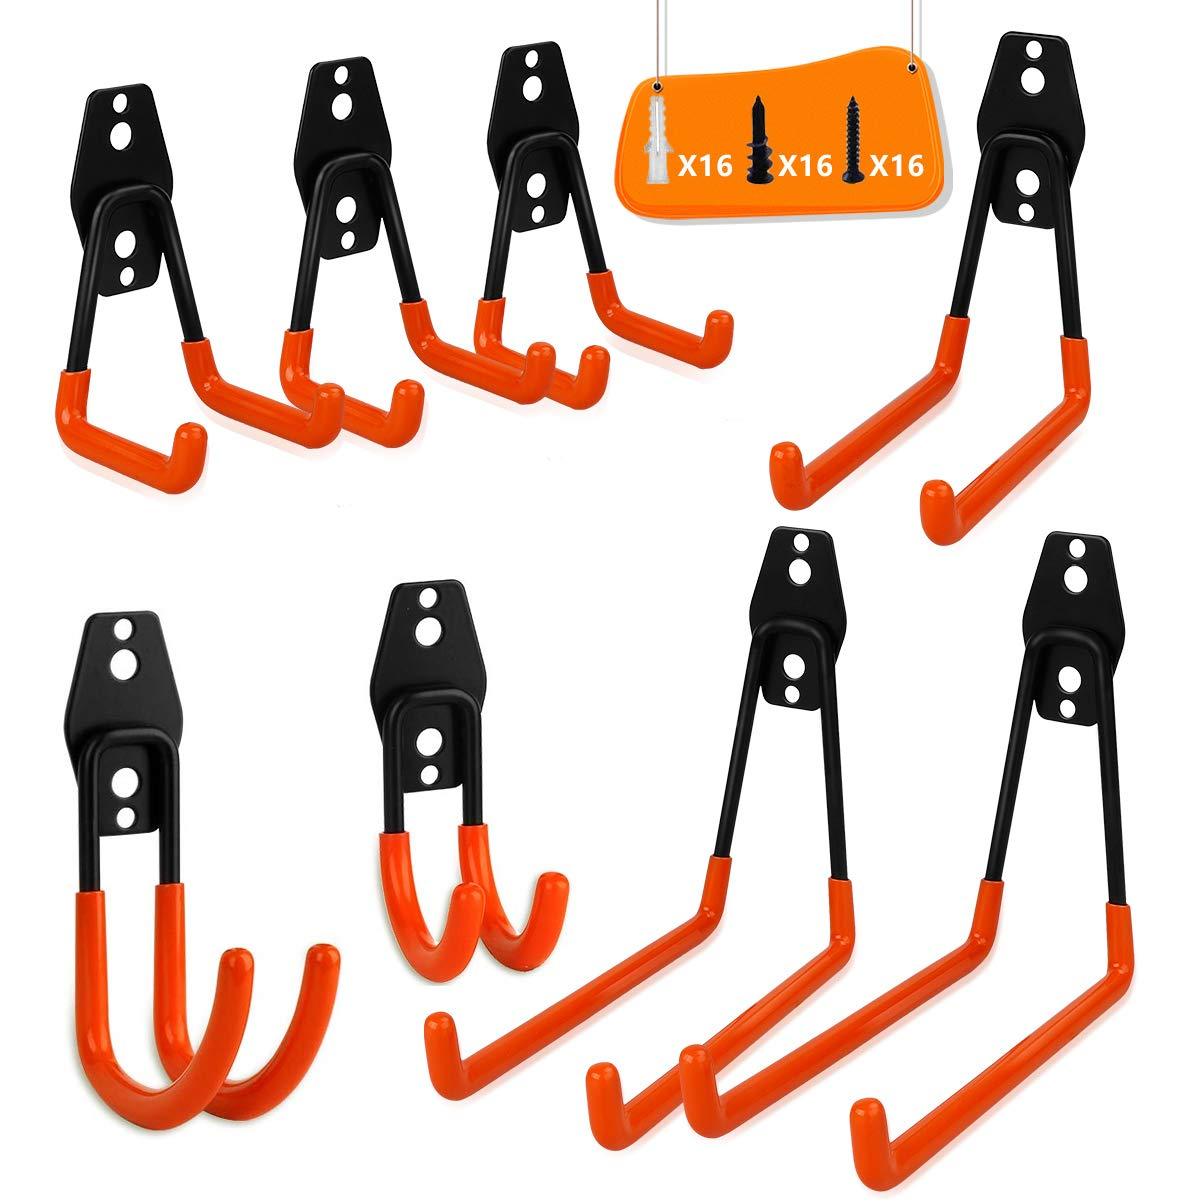 Garage Storage Utility Double Hooks, WOHOME 8-Pack Heavy Duty Wall Hooks for Organizing Power Tools, Ladders, Bulk Items, Bikes, Ropes and More